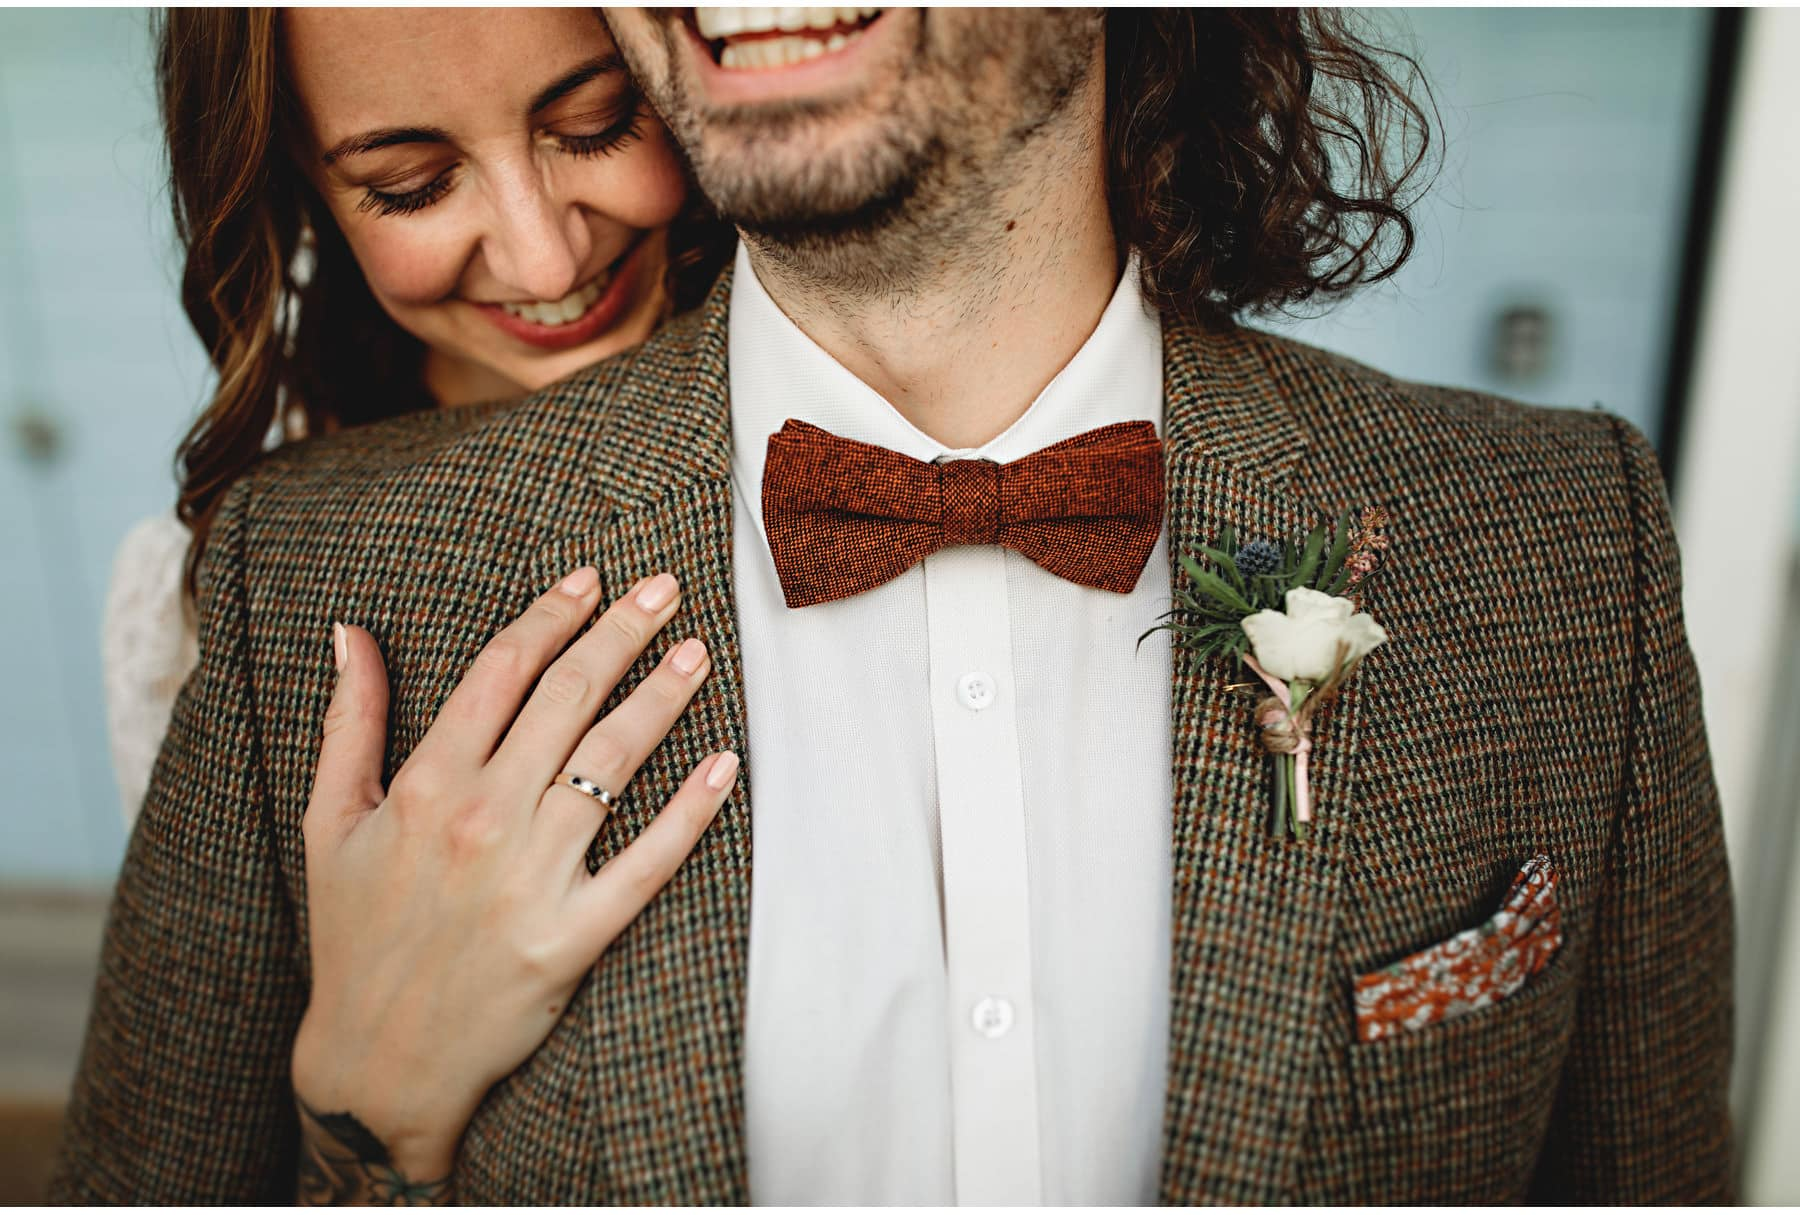 the groom's bow tie and buttonhole